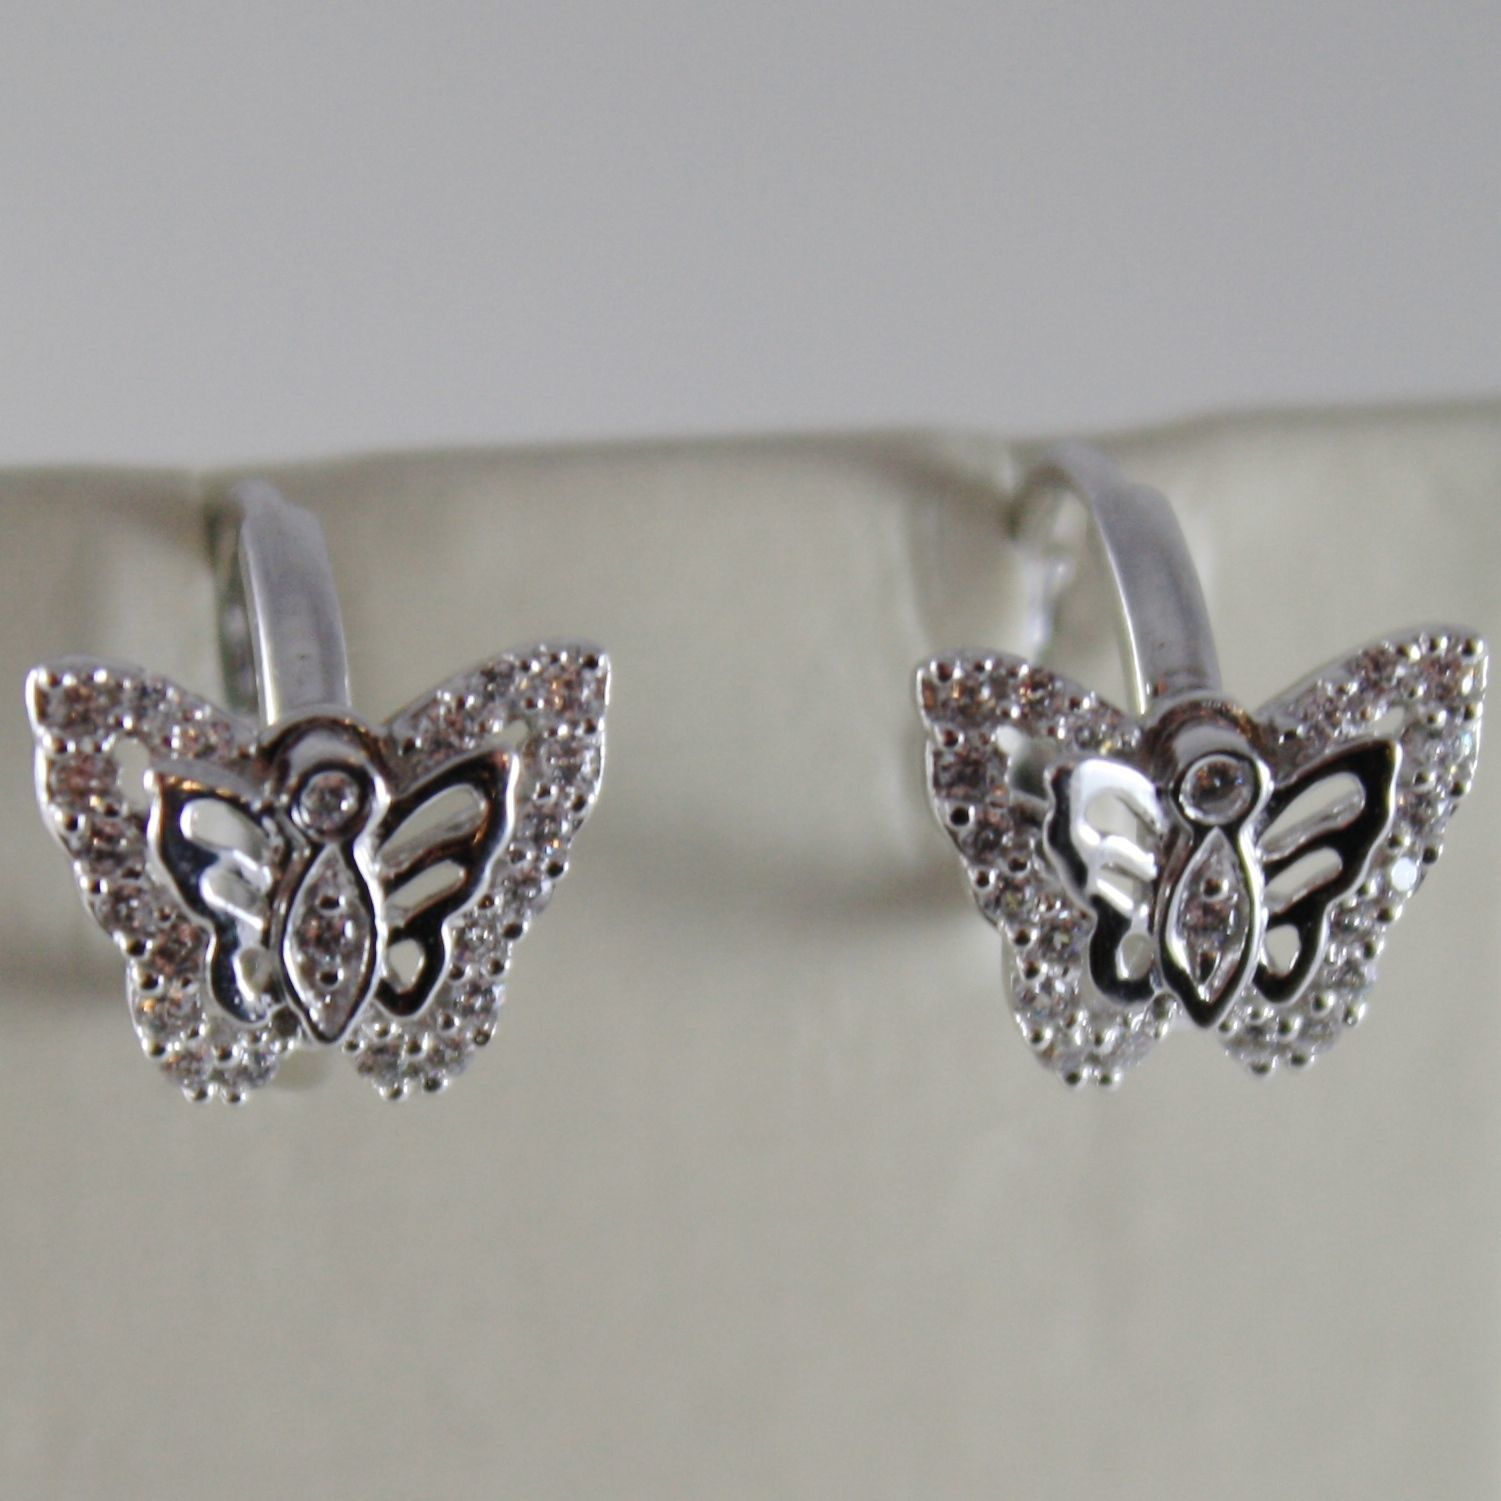 18K WHITE GOLD EARRINGS MINI BUTTERFLY & ZIRCONIA FOR KIDS CHILD MADE IN ITALY